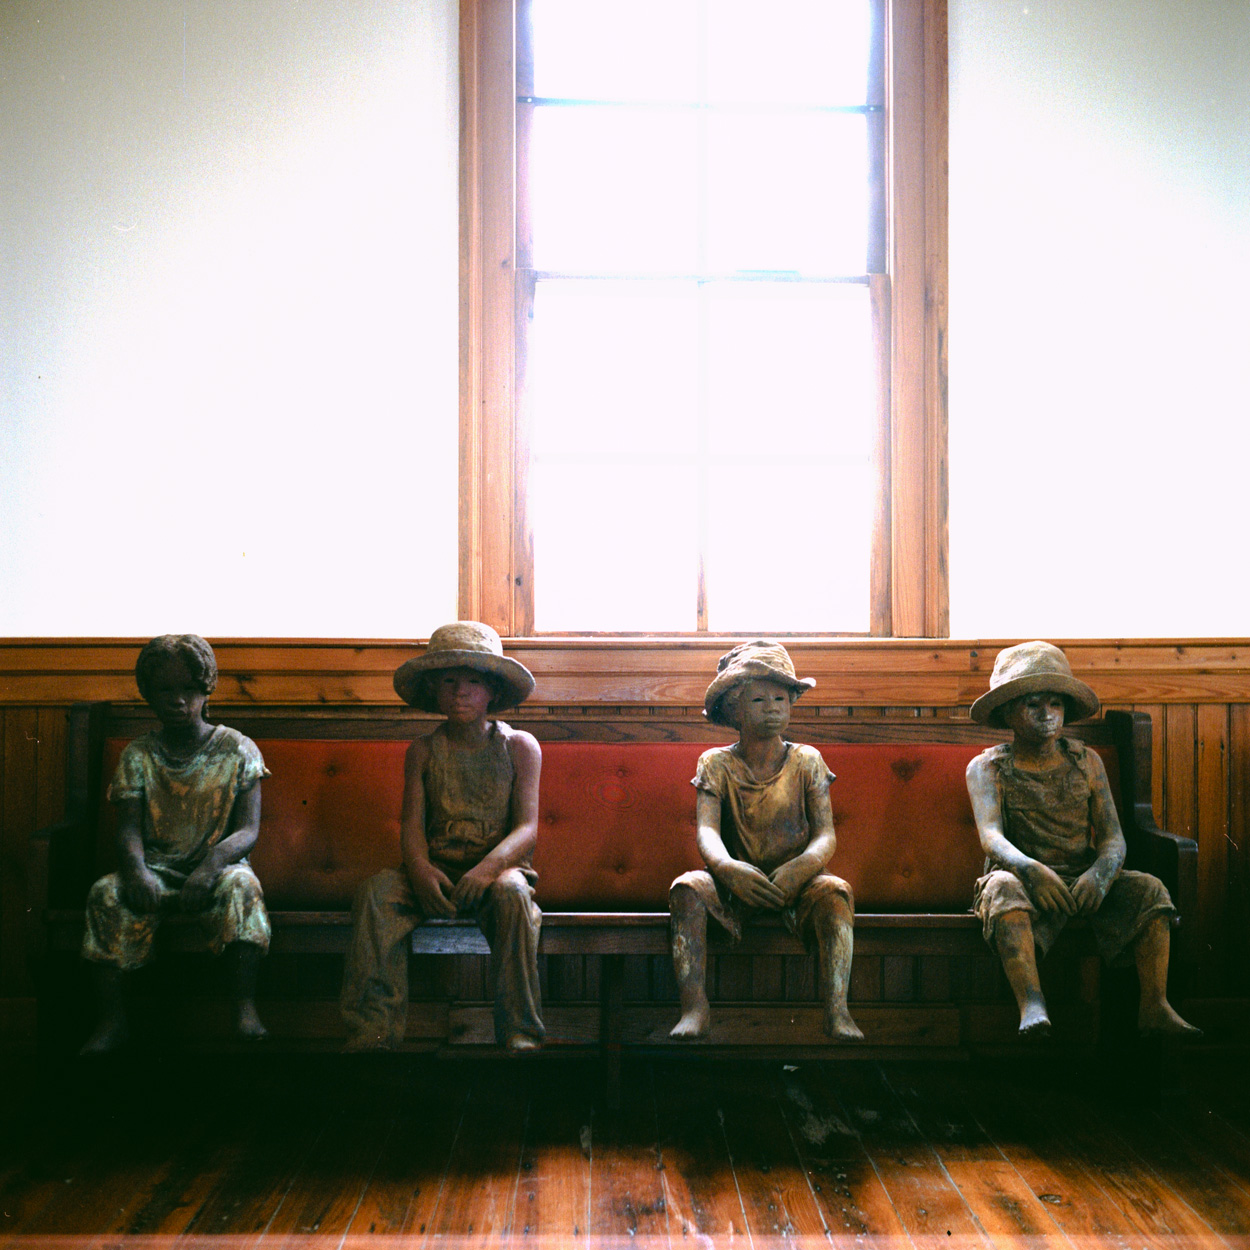 Sculptor Woodrow Nash created these sculptures of children at the time of their emancipation from slavery. These children provided some of the best first hand accounts of what slavery was like.